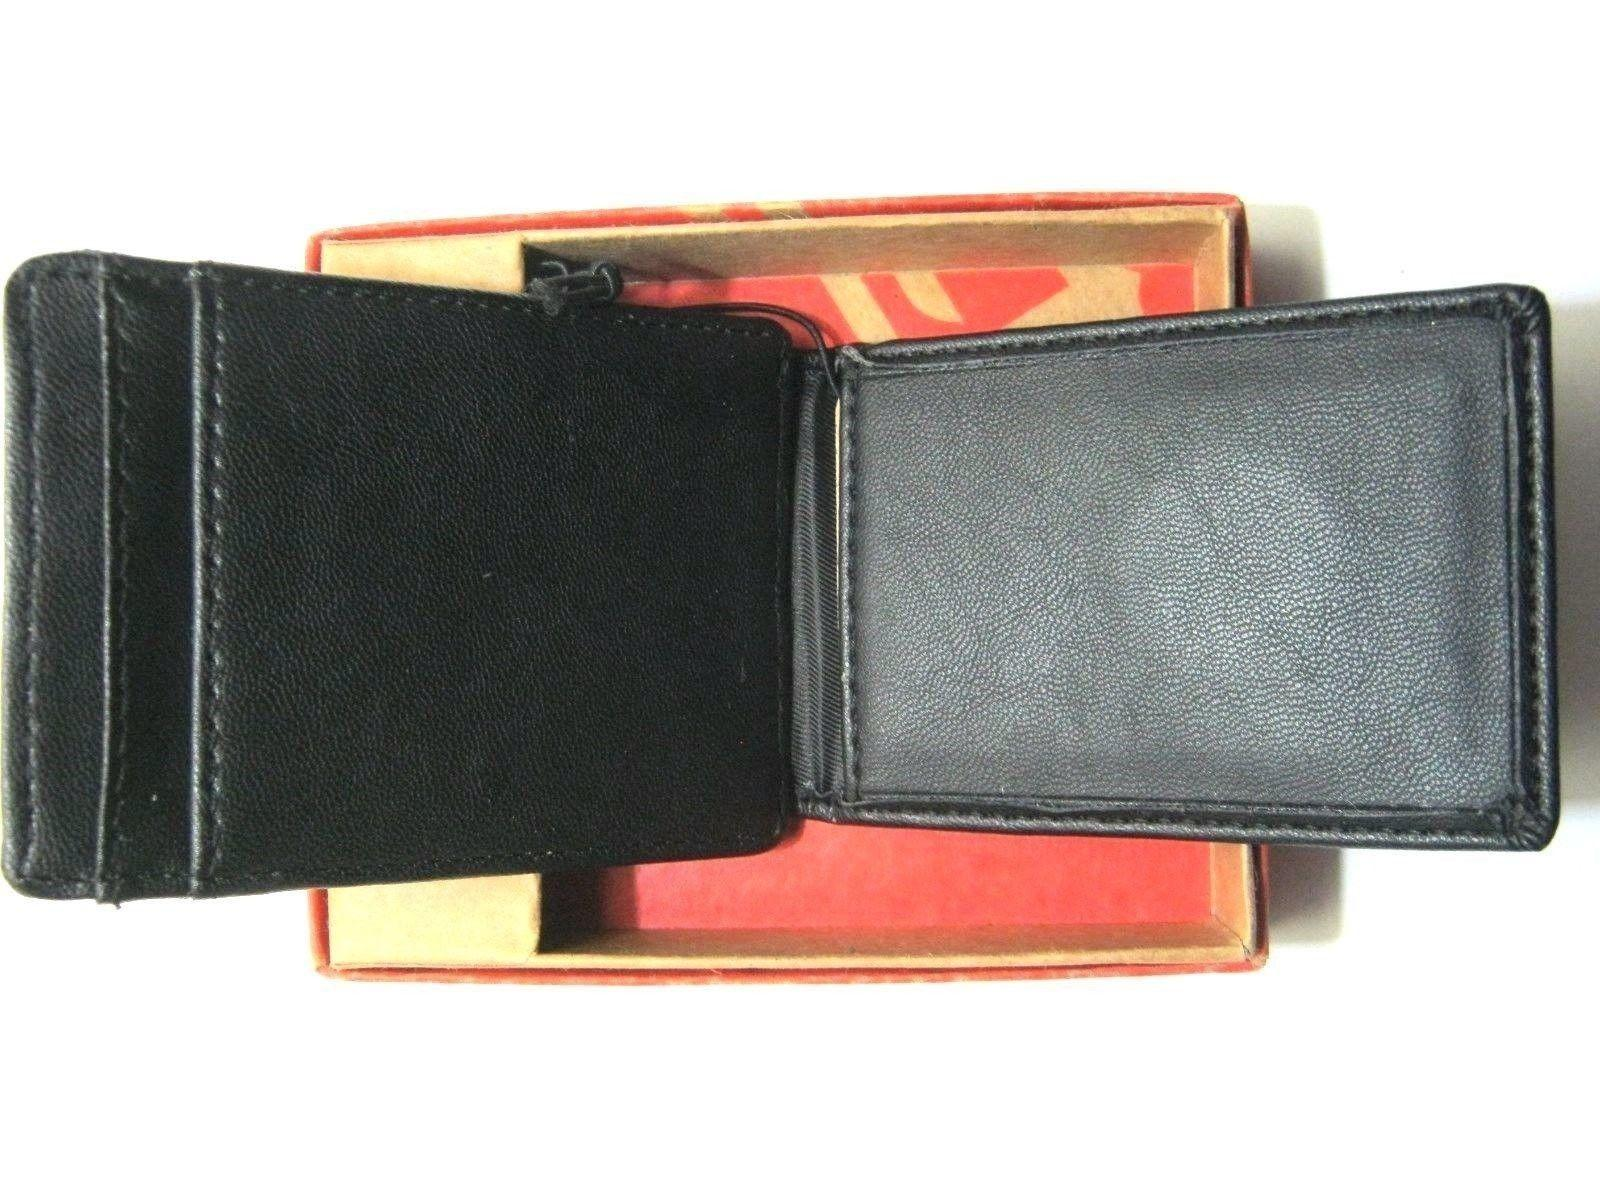 DOCKERS Leather Money Clip Wallet